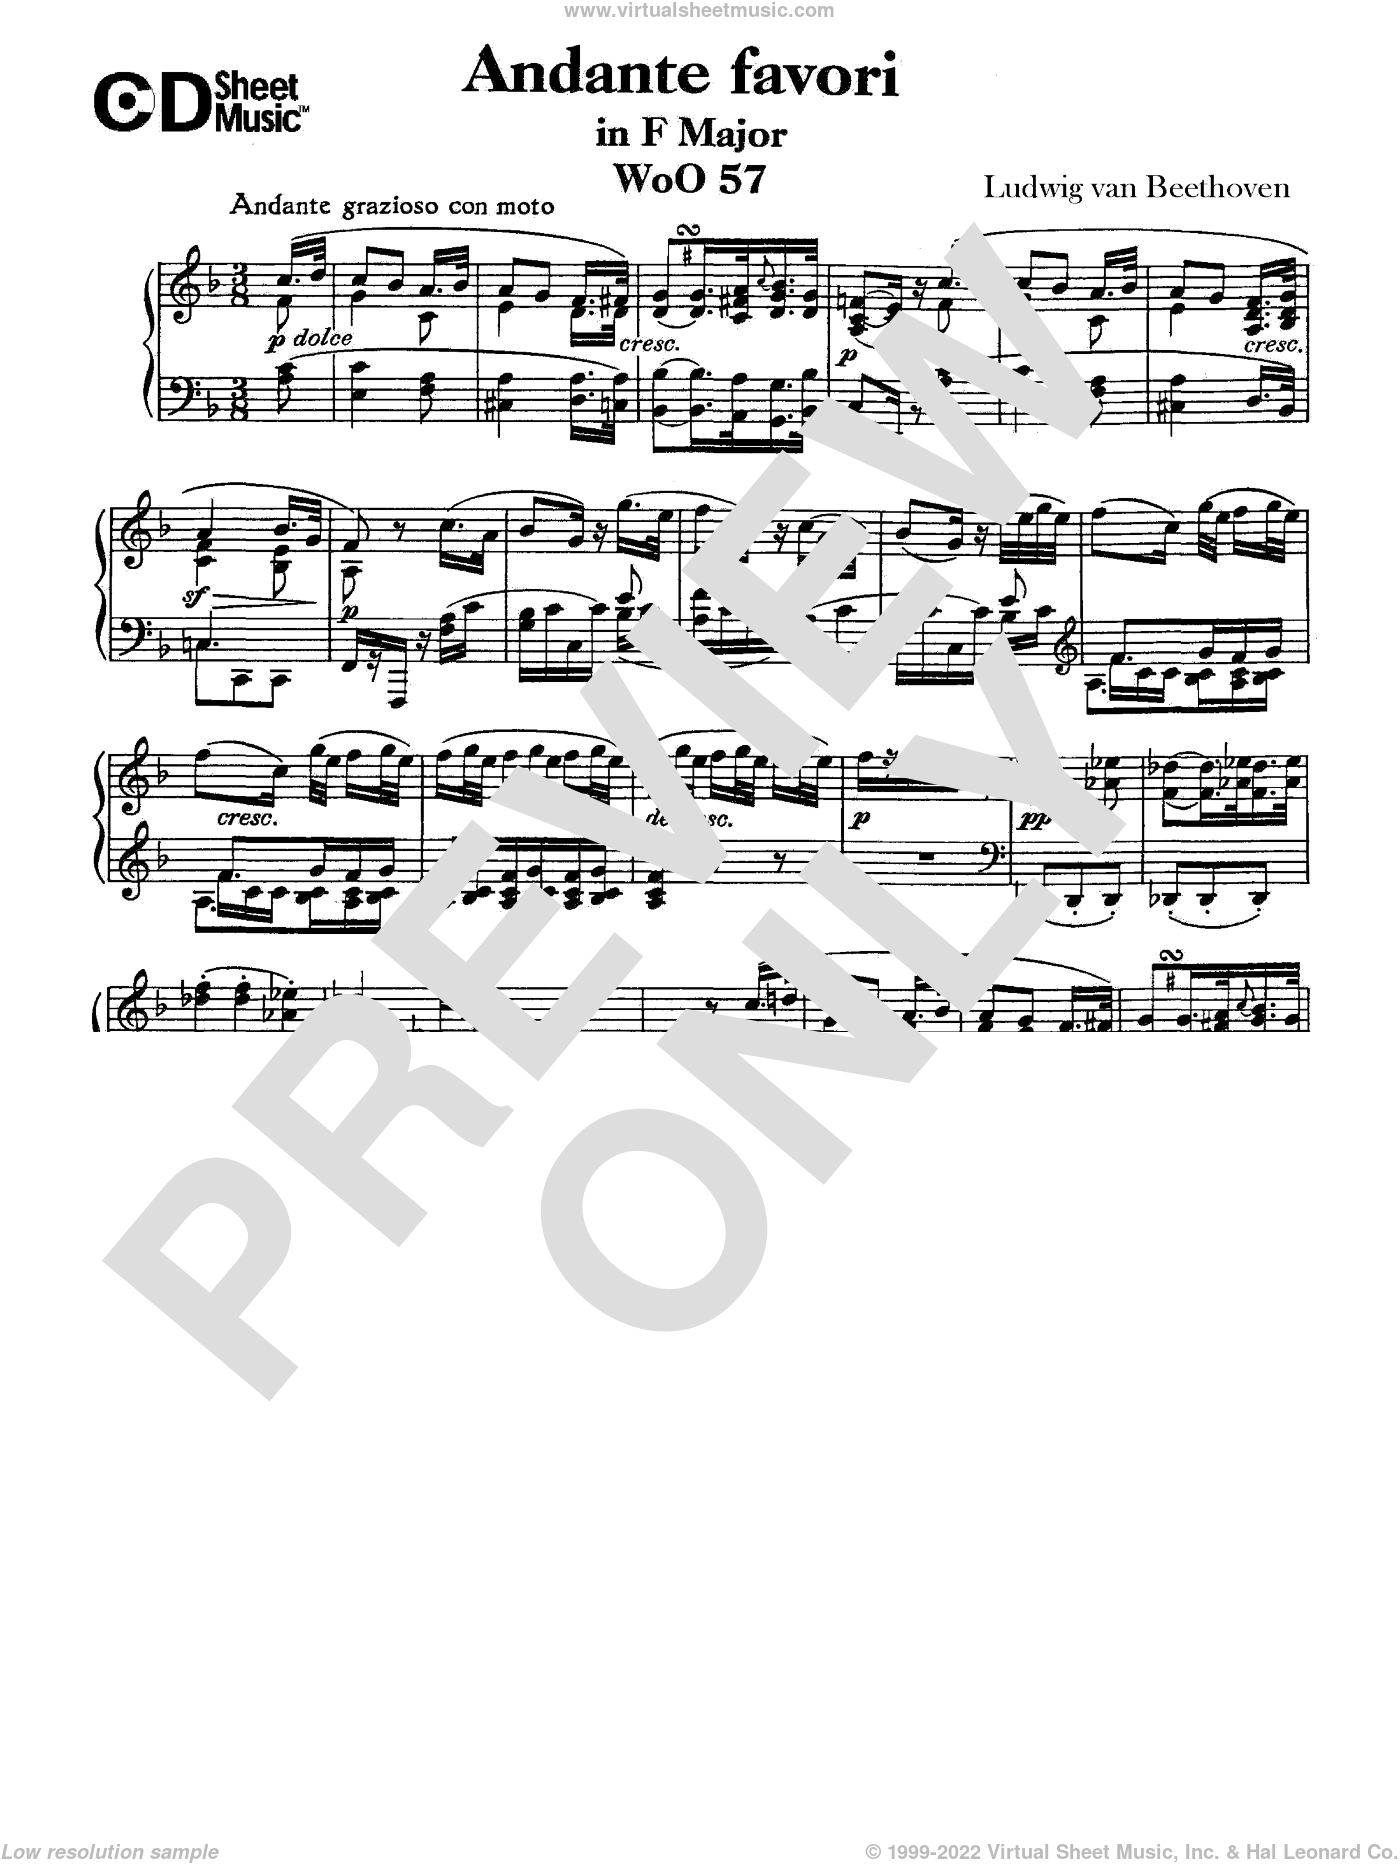 Andante Favori in F Major, WoO 57 sheet music for piano solo by Ludwig van Beethoven, classical score, intermediate piano. Score Image Preview.